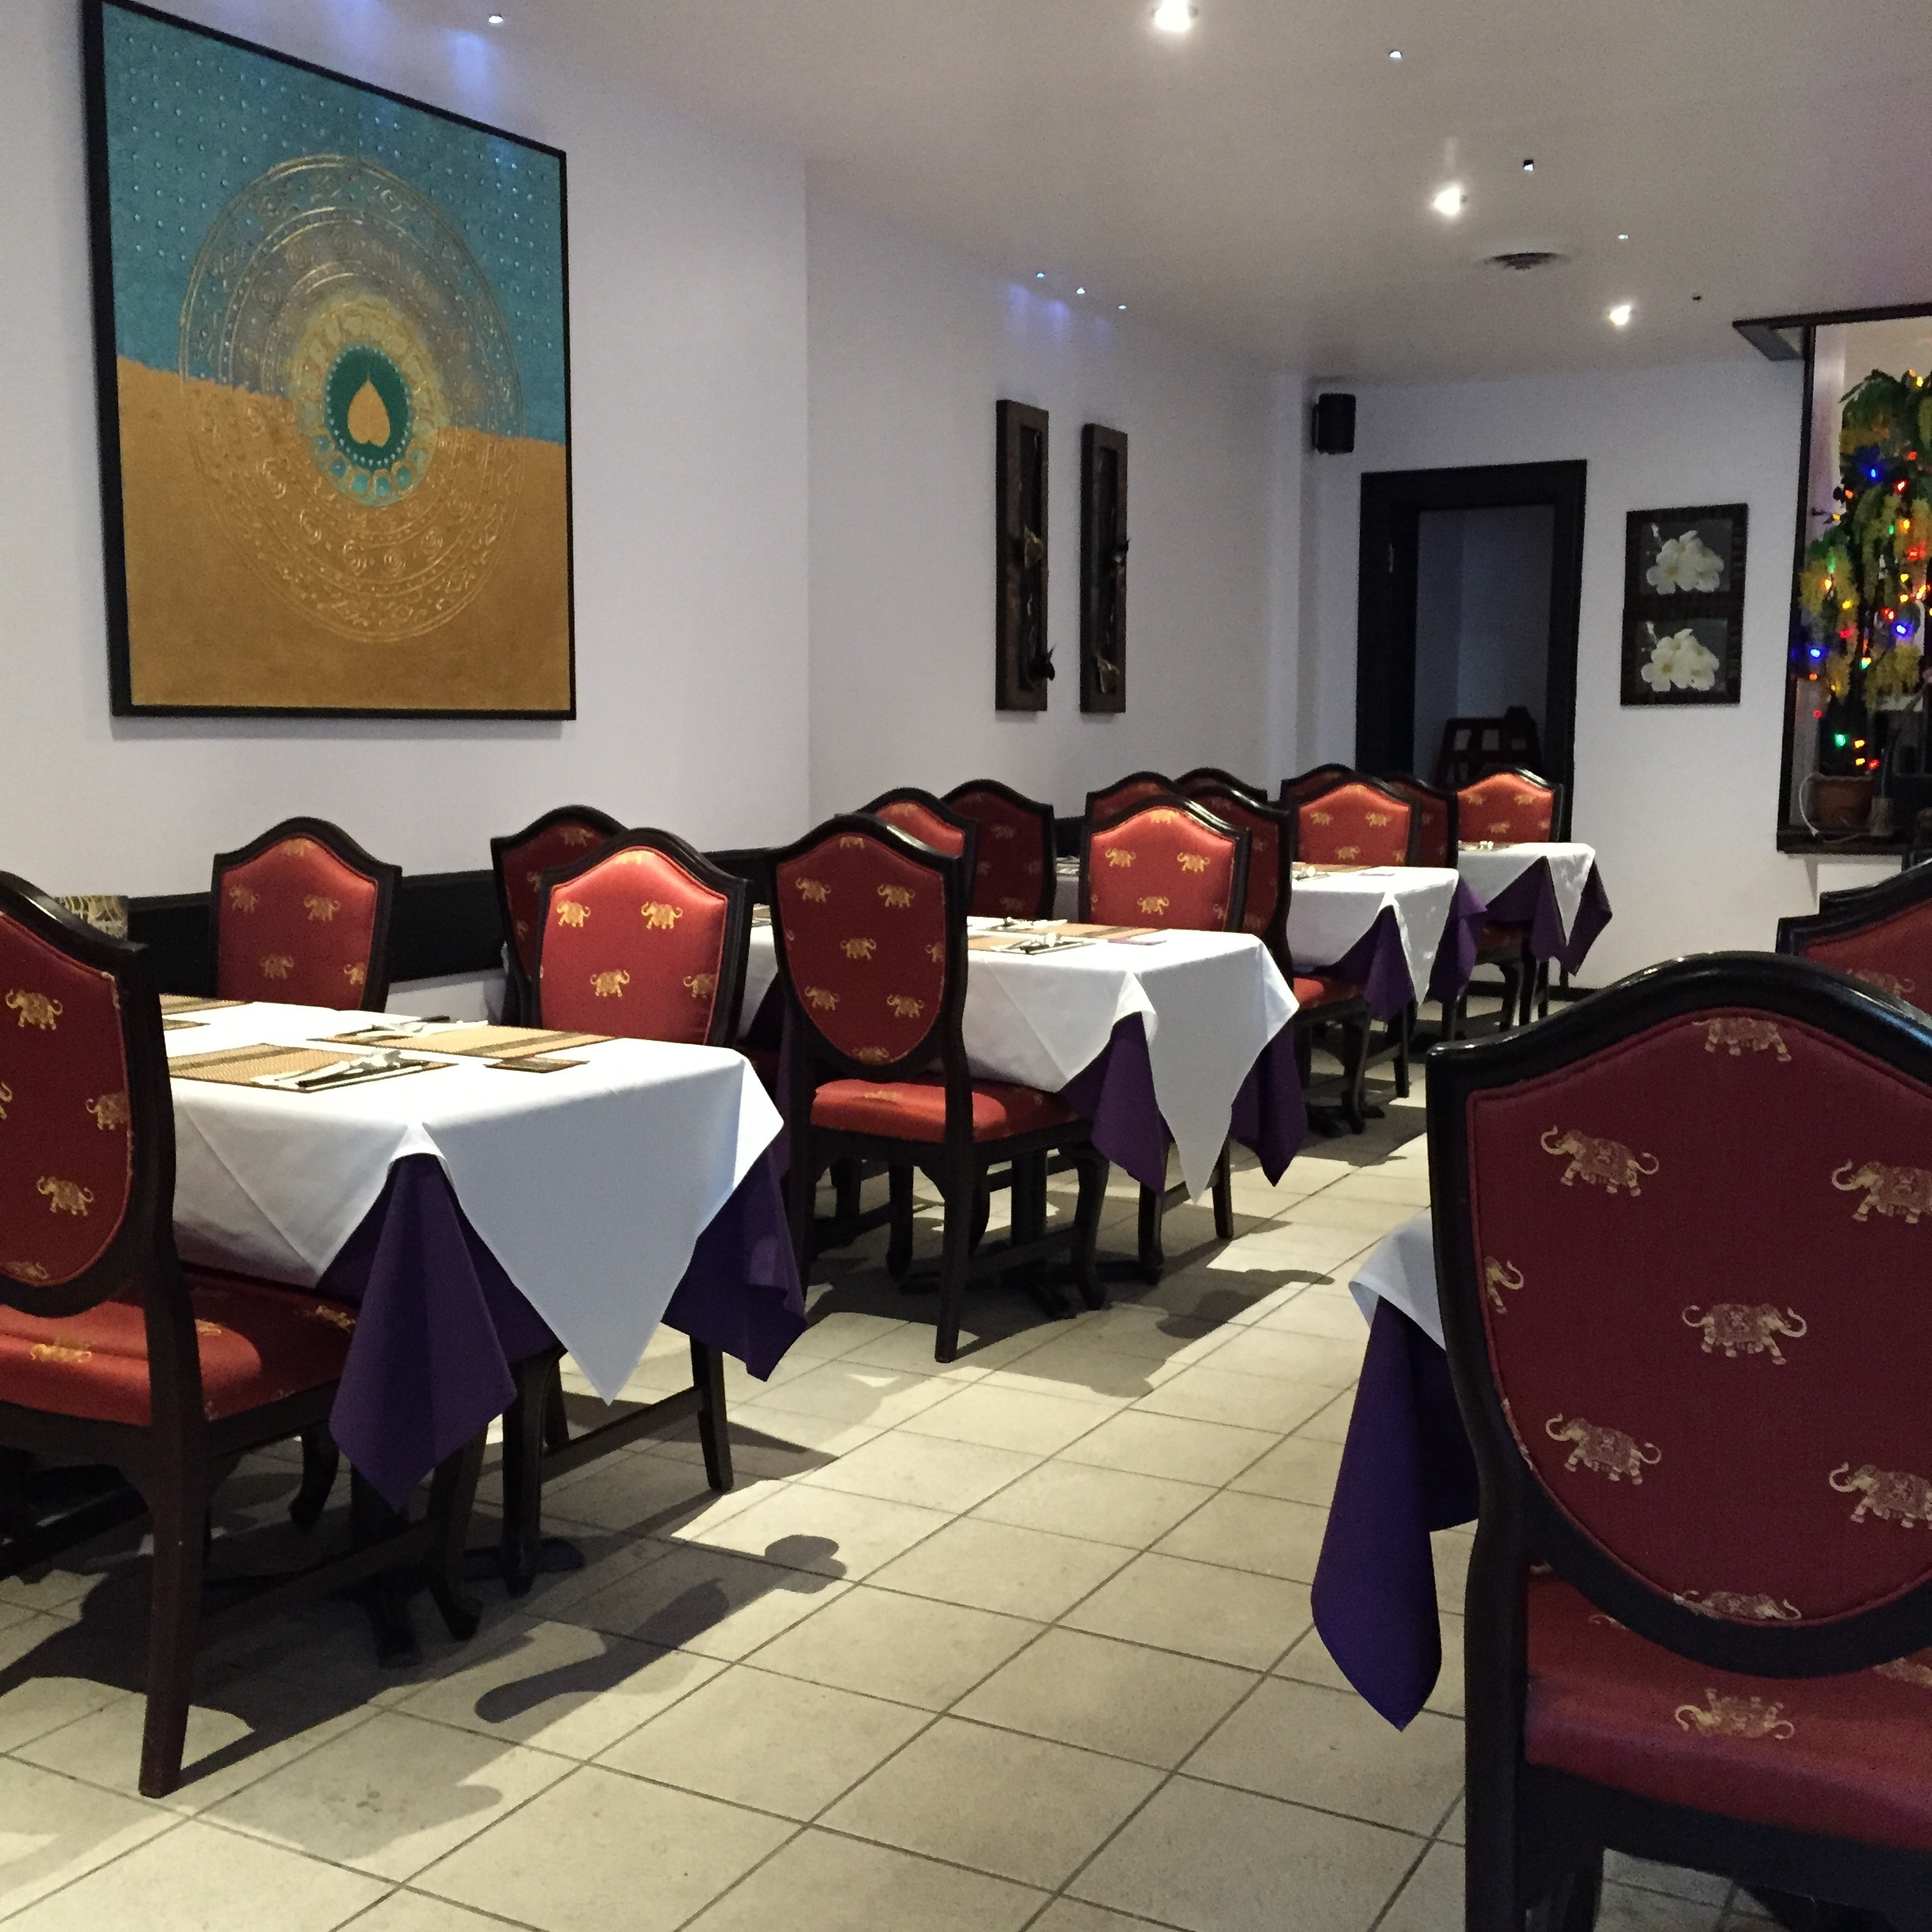 Picture of interior of restaurant. White tablecloths, red chairs.